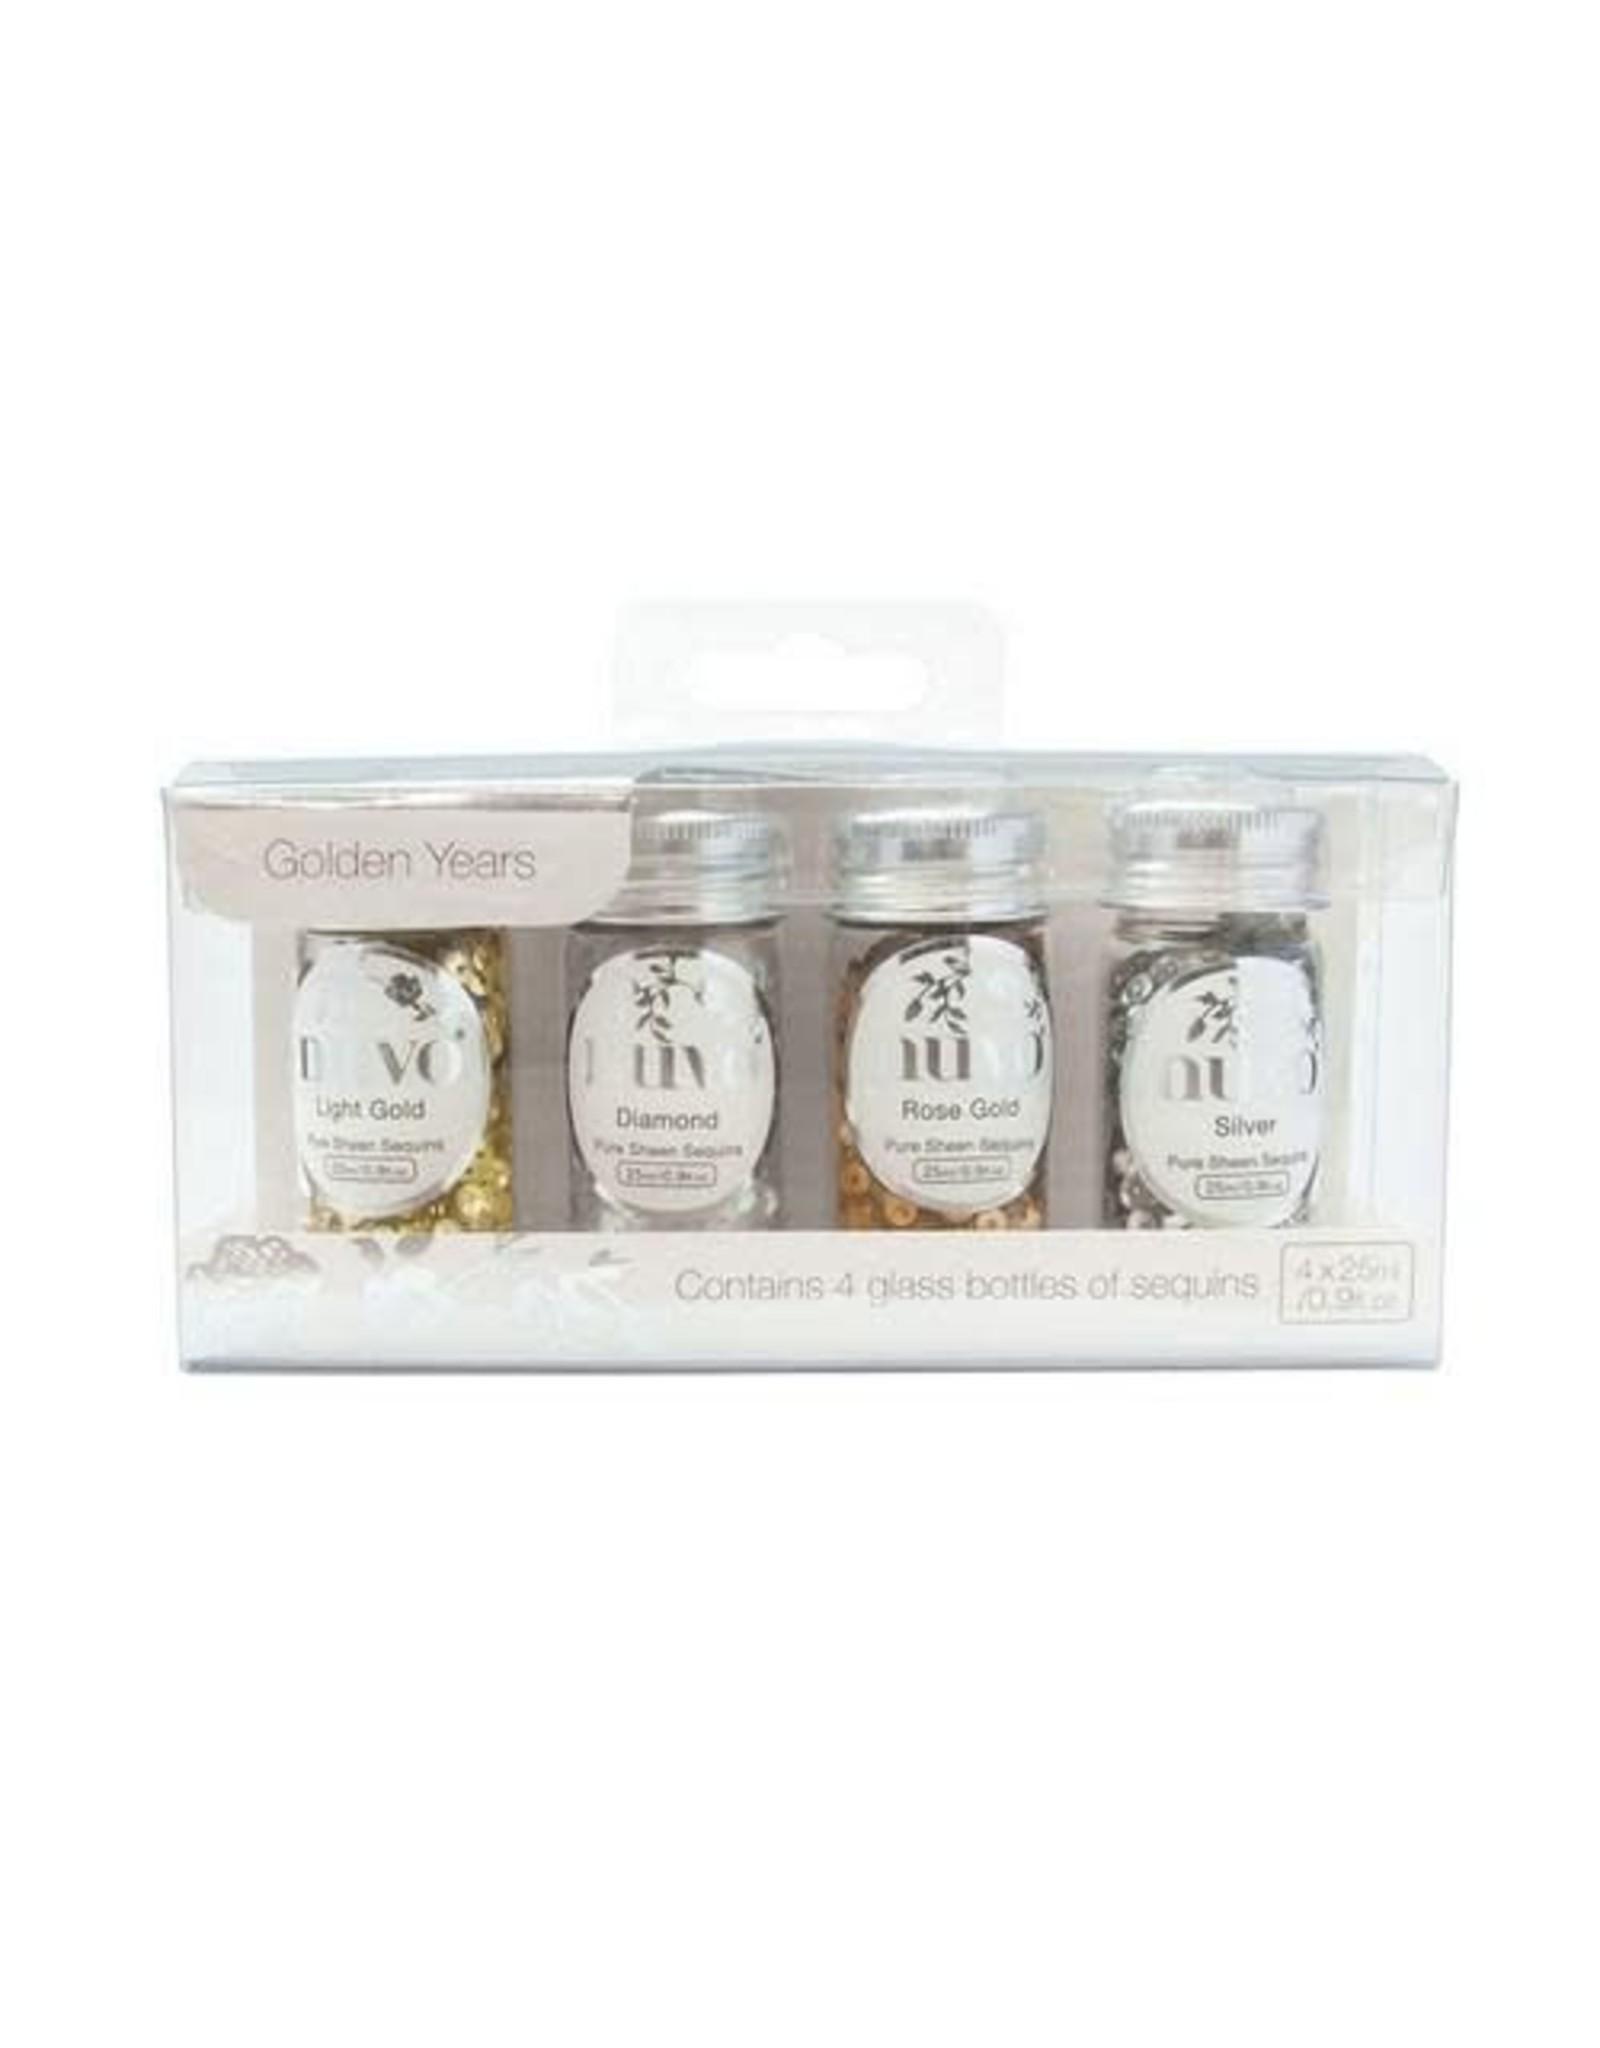 Nuvo pure sheen pailletten - golden years 4 pk 4x25ML 280N